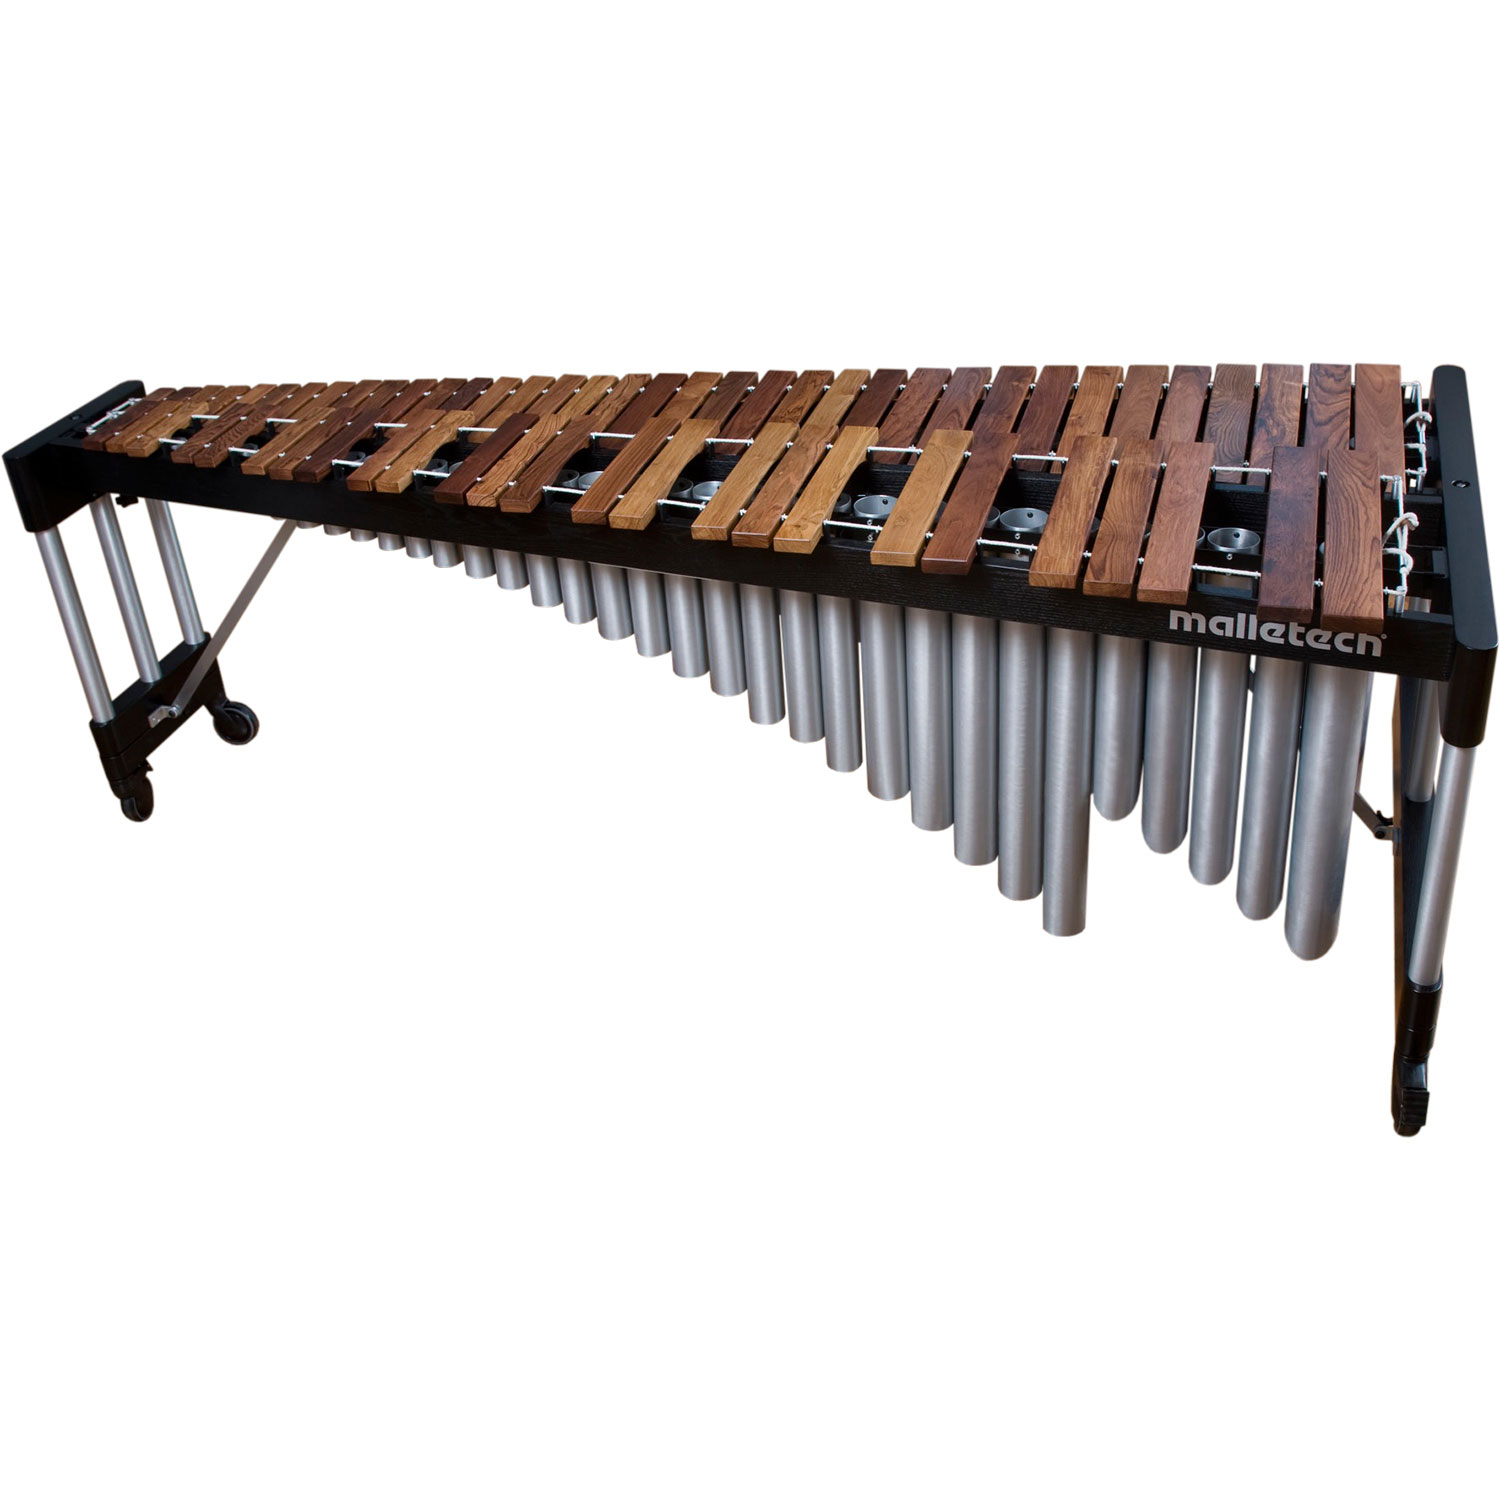 Malletech Stiletto Series 5.0 Octave Height Adjustable Rosewood Marimba